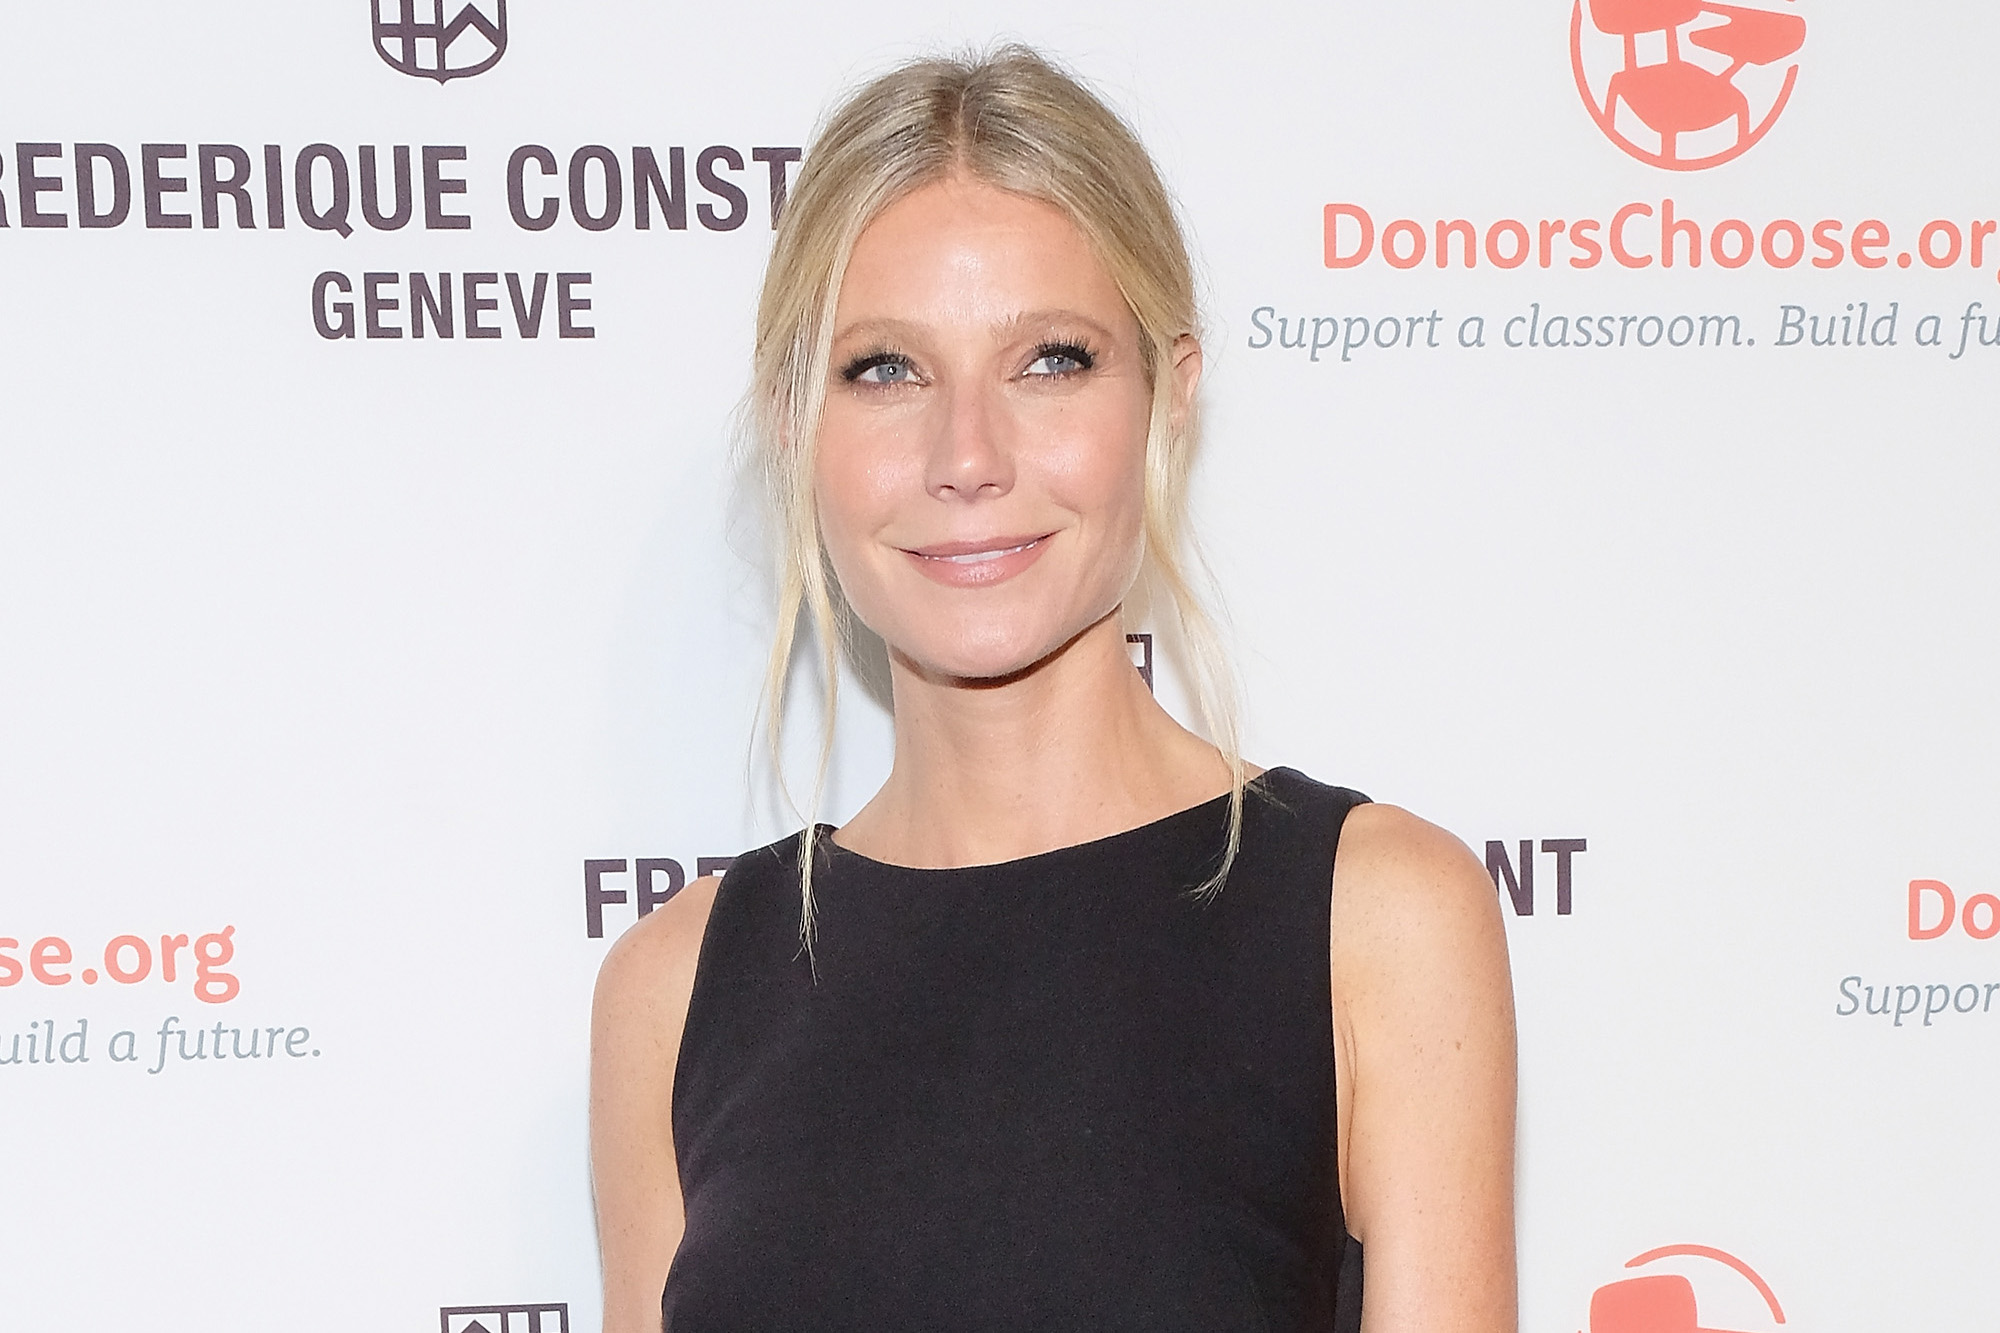 """Actress Gwyneth Paltrow has reportedly been sued for an alleged hit-and-run accident that took place in Utah during a ski trip a few years ago. However, the Marvel star claims the man's allegations are """"completely without merit"""" in a statement she released to E! News on January 29. The plaintiff in the lawsuit, Terry Sanderson, 46, is accusing Paltrow, 46, of crashing into him at the Deer Valley Resort back in February 2016.He claims the Iron Man actress was skiing """"out of control"""" before they collided at a high impact. The complaint alleges that she knocked him """"down hard, knocking him out, and causing a brain surgery, four broken ribs and other injuries."""" Skiers are required to """"immediately stop at the scene of such collision and render to any person injured in such collision reasonable assistance,"""" according to the Skier Responsibility Code. One of the rules is that anyone involved in an accident """"shall give their name and address to an employee of the ski area operator,"""" however Sanderson claims that Paltrow didn't comply with the ordinance. """"Paltrow got up, turned and skied away, leaving Sanderson stunned, lying in the snow, seriously injured,"""" the doctor, who was 44 at the time of the collision, said. A witness also claimed to see the same thing. On top of that, the complaint notes how theDeer Valley instructor who taught the actress how to ski""""filled out and signed an incident report falsely stating that Gwyneth Paltrow did not cause the crash even though [the ski instructor] did not see the crash."""" Sanderson and his lawyer will reportedly be seeking reparations and claim the value of the damage is """"more than $3,100,000."""" On the other hand, Paltrow fired back and claims that""""this lawsuit is completely without merit,"""" she told E! News in a statement. """"We expect to be vindicated."""""""